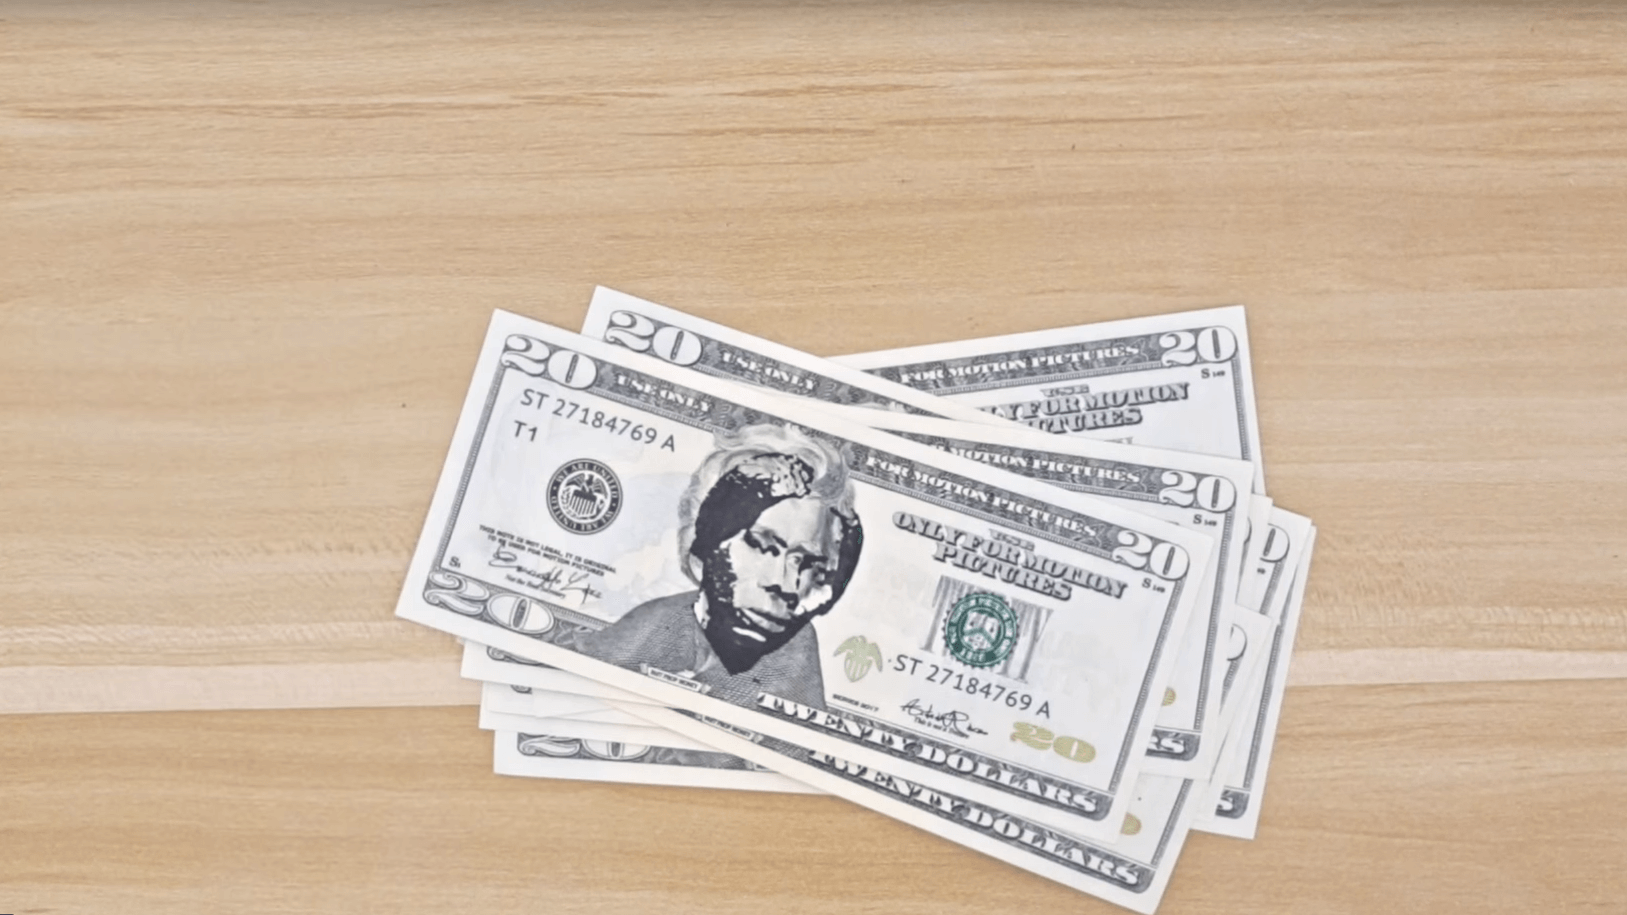 3D Printed Stamp Allows You to Put Harriet Tubman on Your $20 Bills | All3DP